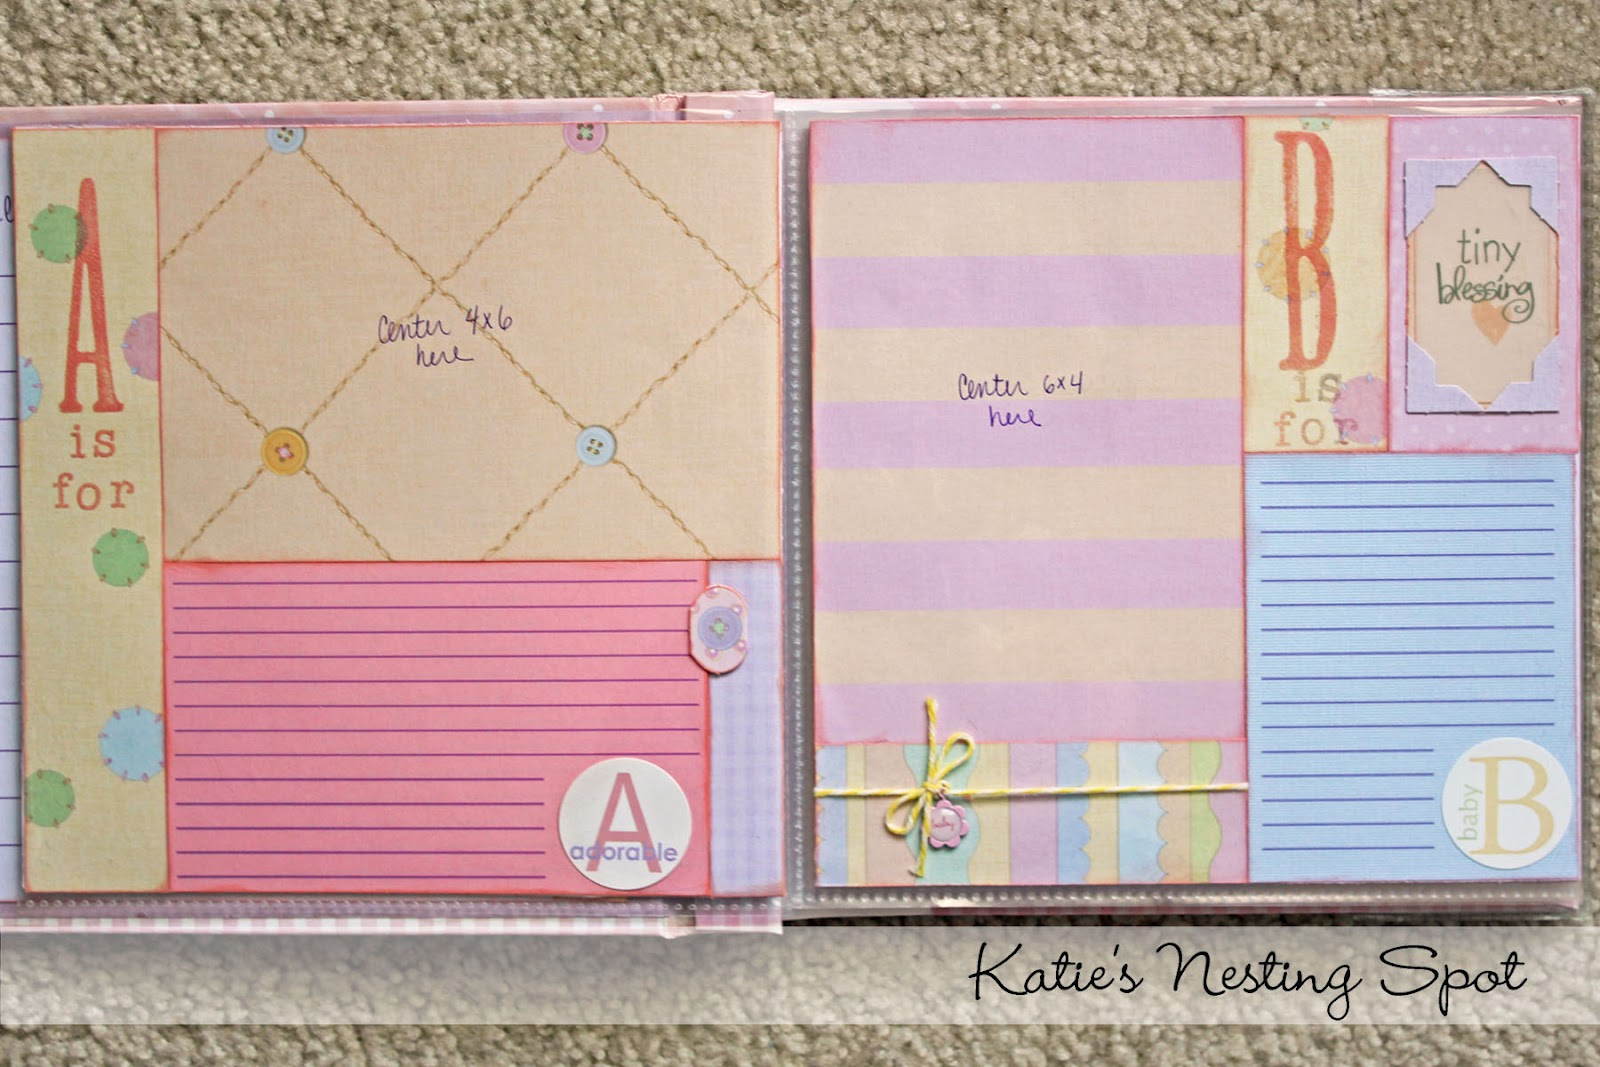 Scrapbook ideas abc album - For The Letter Pages I Designed A Number Of Basic Page Layouts And Reused Them Through Out The Book So The Design Process Was Easier